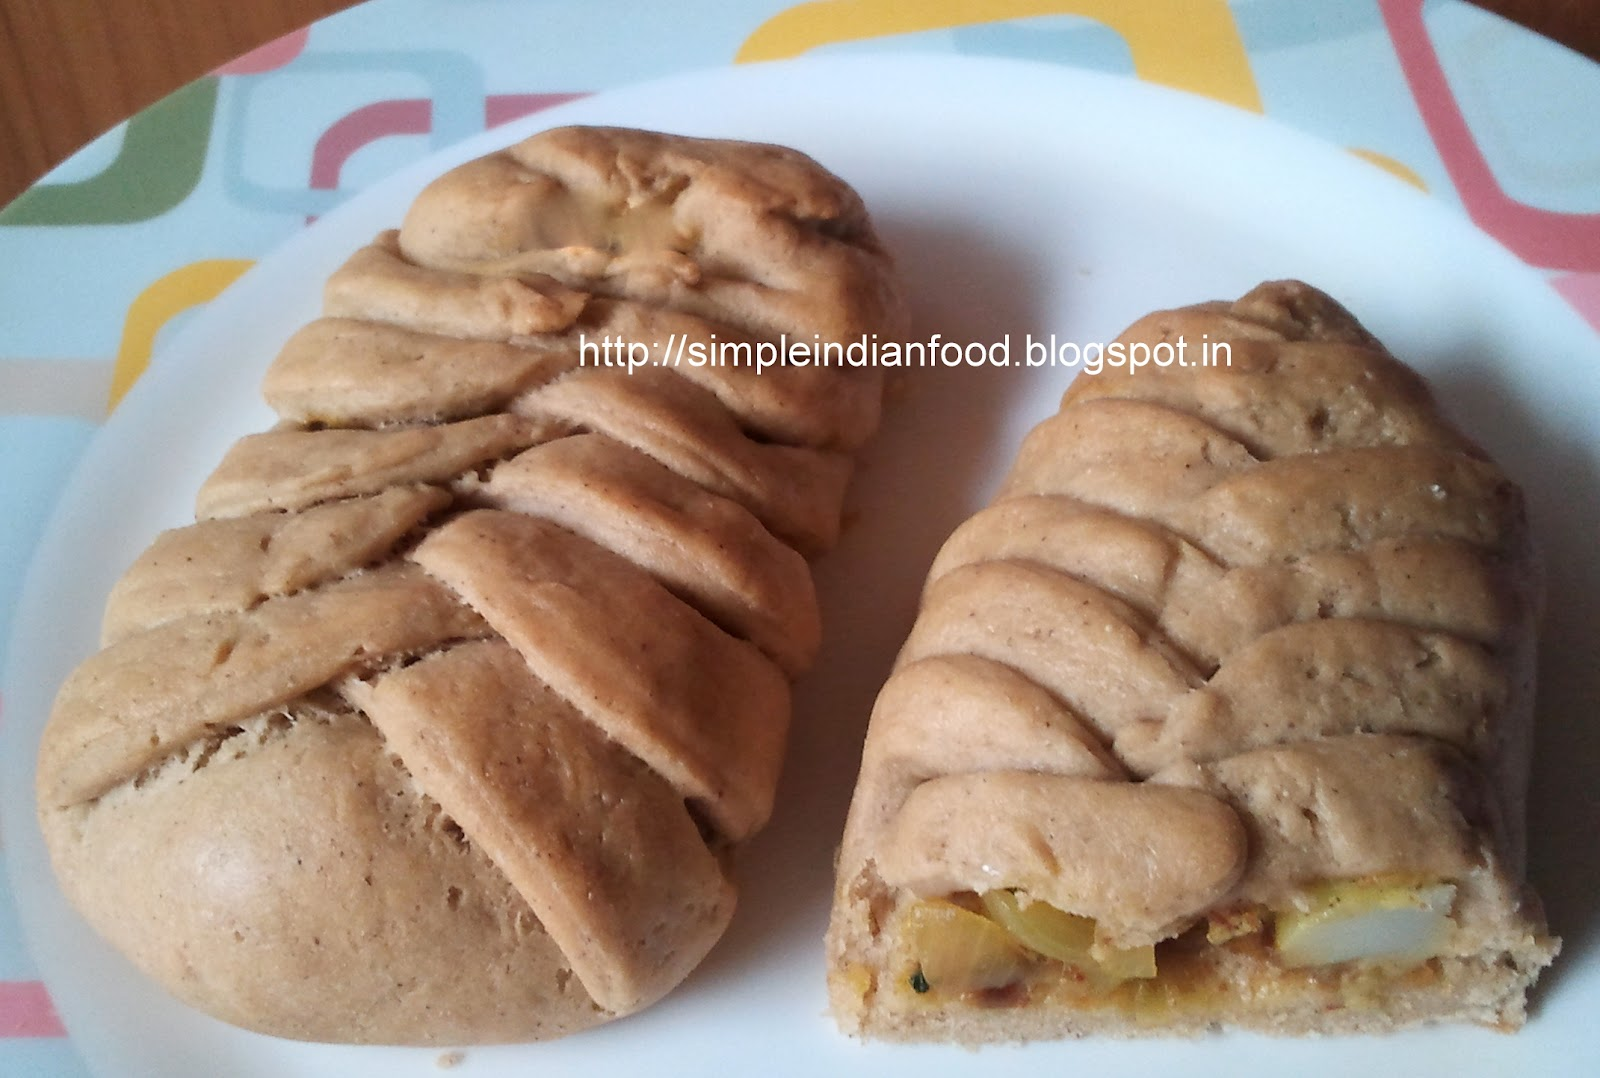 ... Indian Food- An Easy Cooking Blog: Whole wheat Stuffed Braided bread